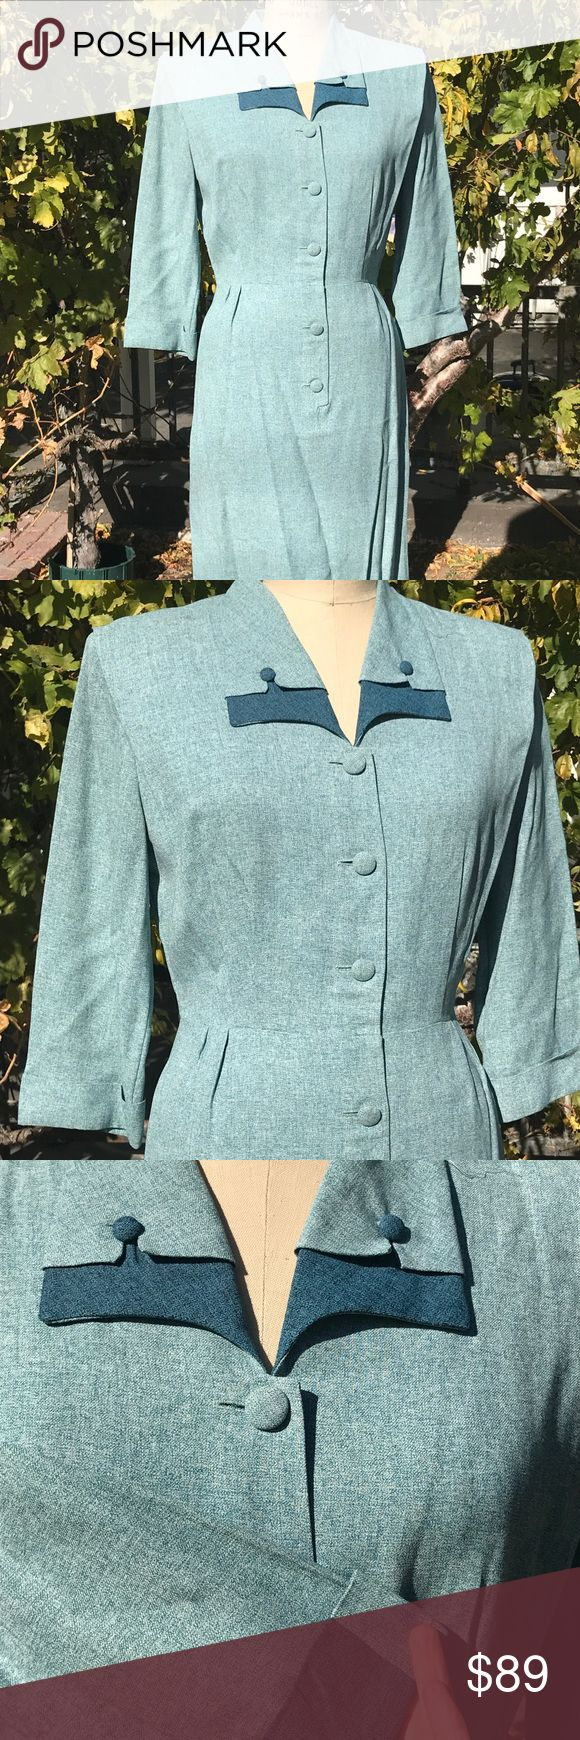 Vintage 1940s gabardine dress RARE larger size!   Vintage 40s gabardine dress in the prettiest robin egg blue! Dark blue accents. All original covered buttons. Label is Style Lure of CA.   Measurements: up to 40in bust due to pleated nature. Waist waist up to 32in. Hips up to 42in. No stretch.   Condition: Fabric is strong, no wear or weakness. No holes noted. Noticed very faint color change in right pit, may want to dry clean. Note that the lines in skirt are shadows from the power lines…